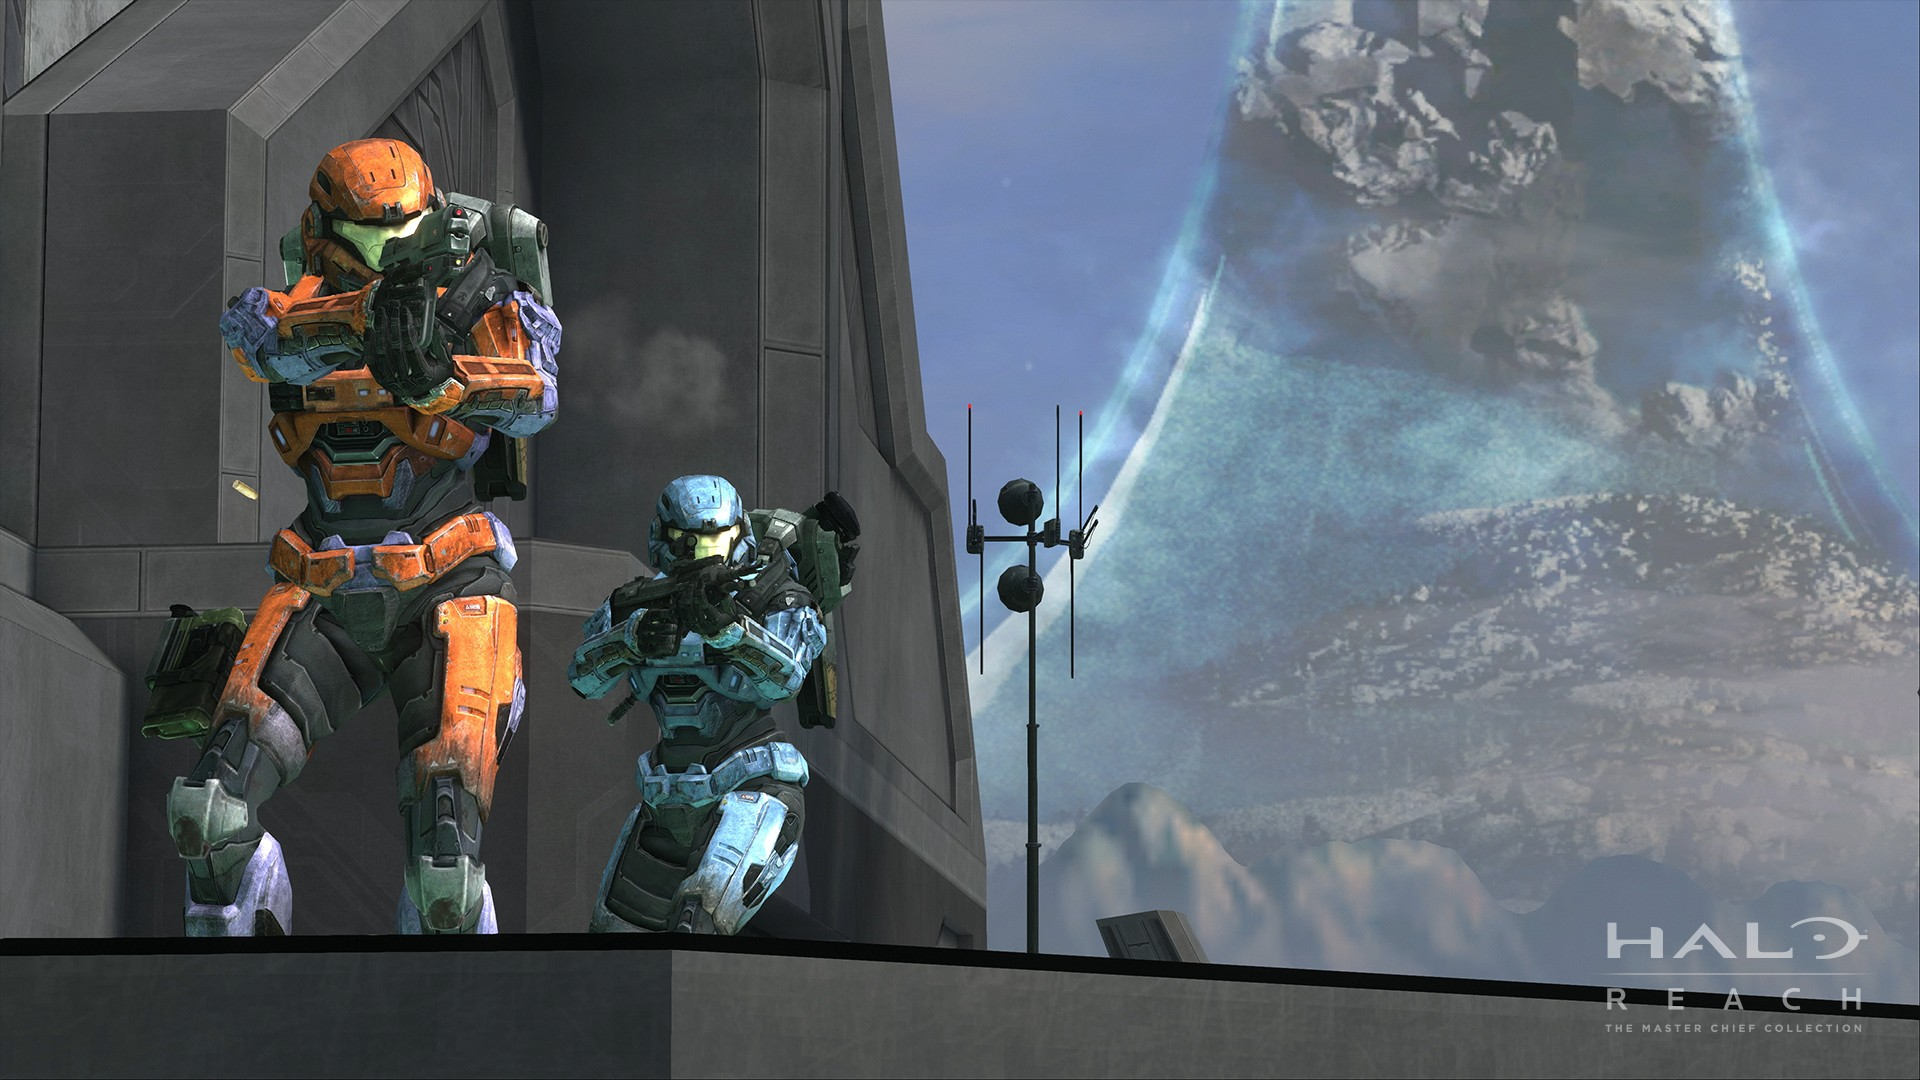 Halo Reach Available Now With Halo The Master Chief